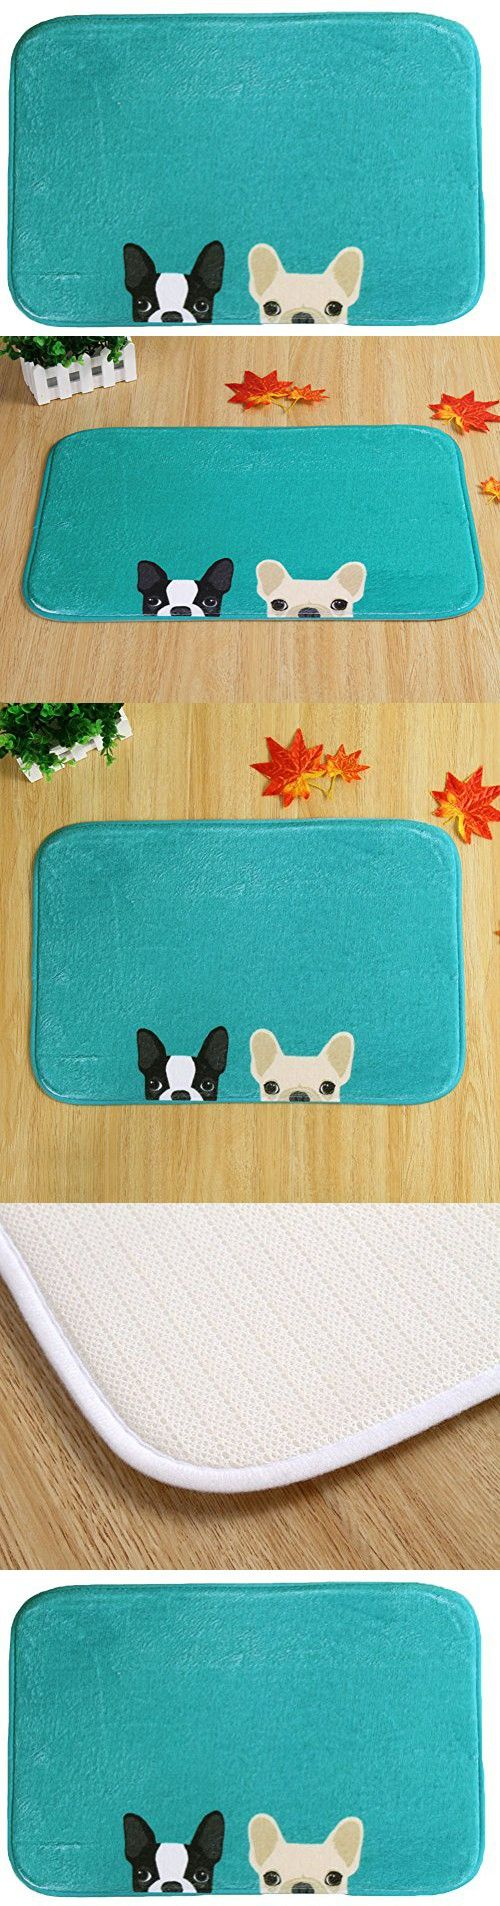 Tappeti Maison Du Monde In Saldo Livebycare Dog Theme Doormat Decorative Soft Washable Non Slip